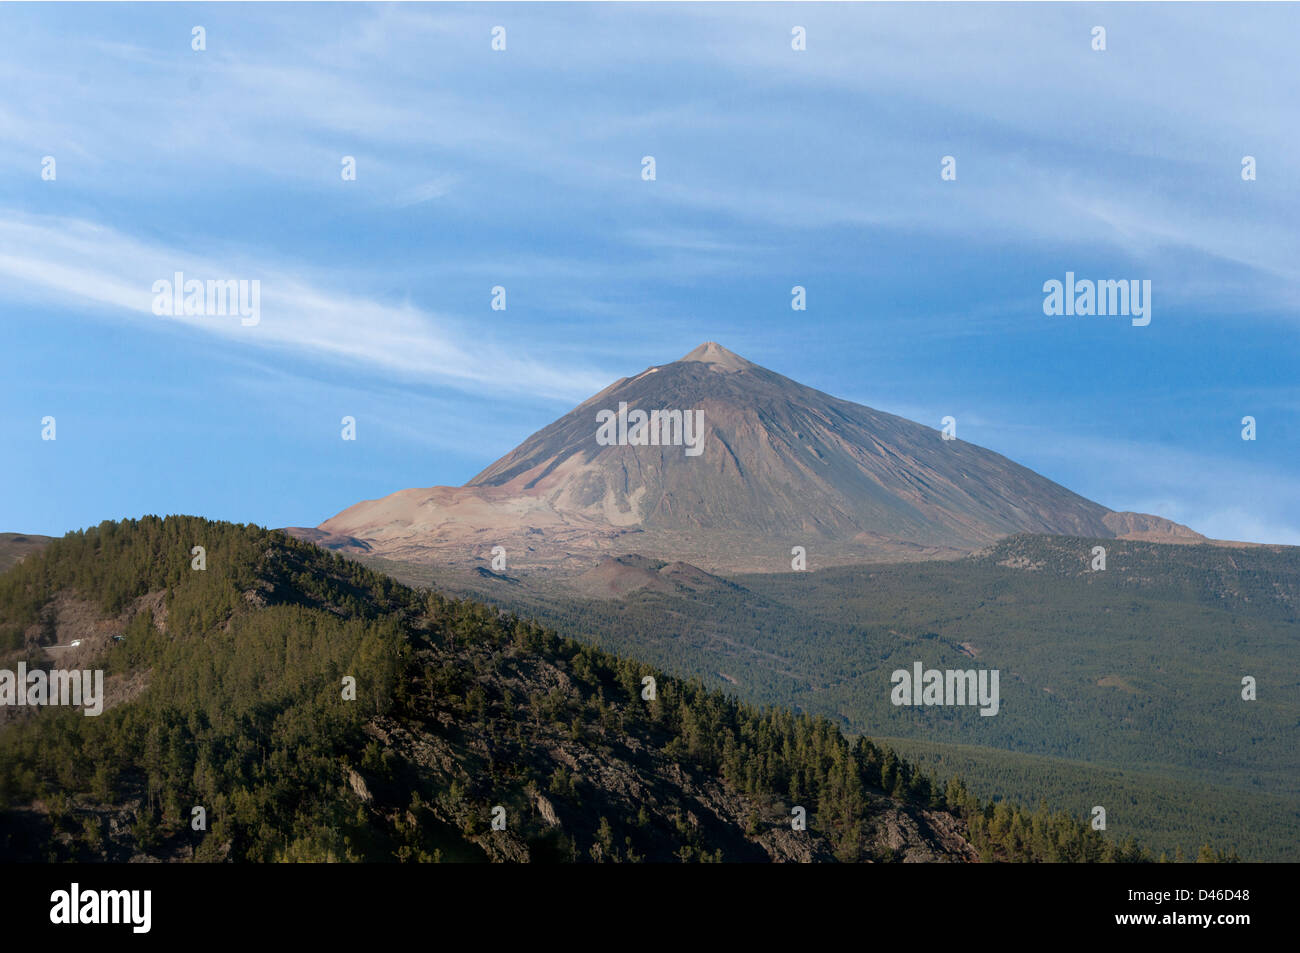 Teide volcano on Tenerife in the Canary Islands - Stock Image